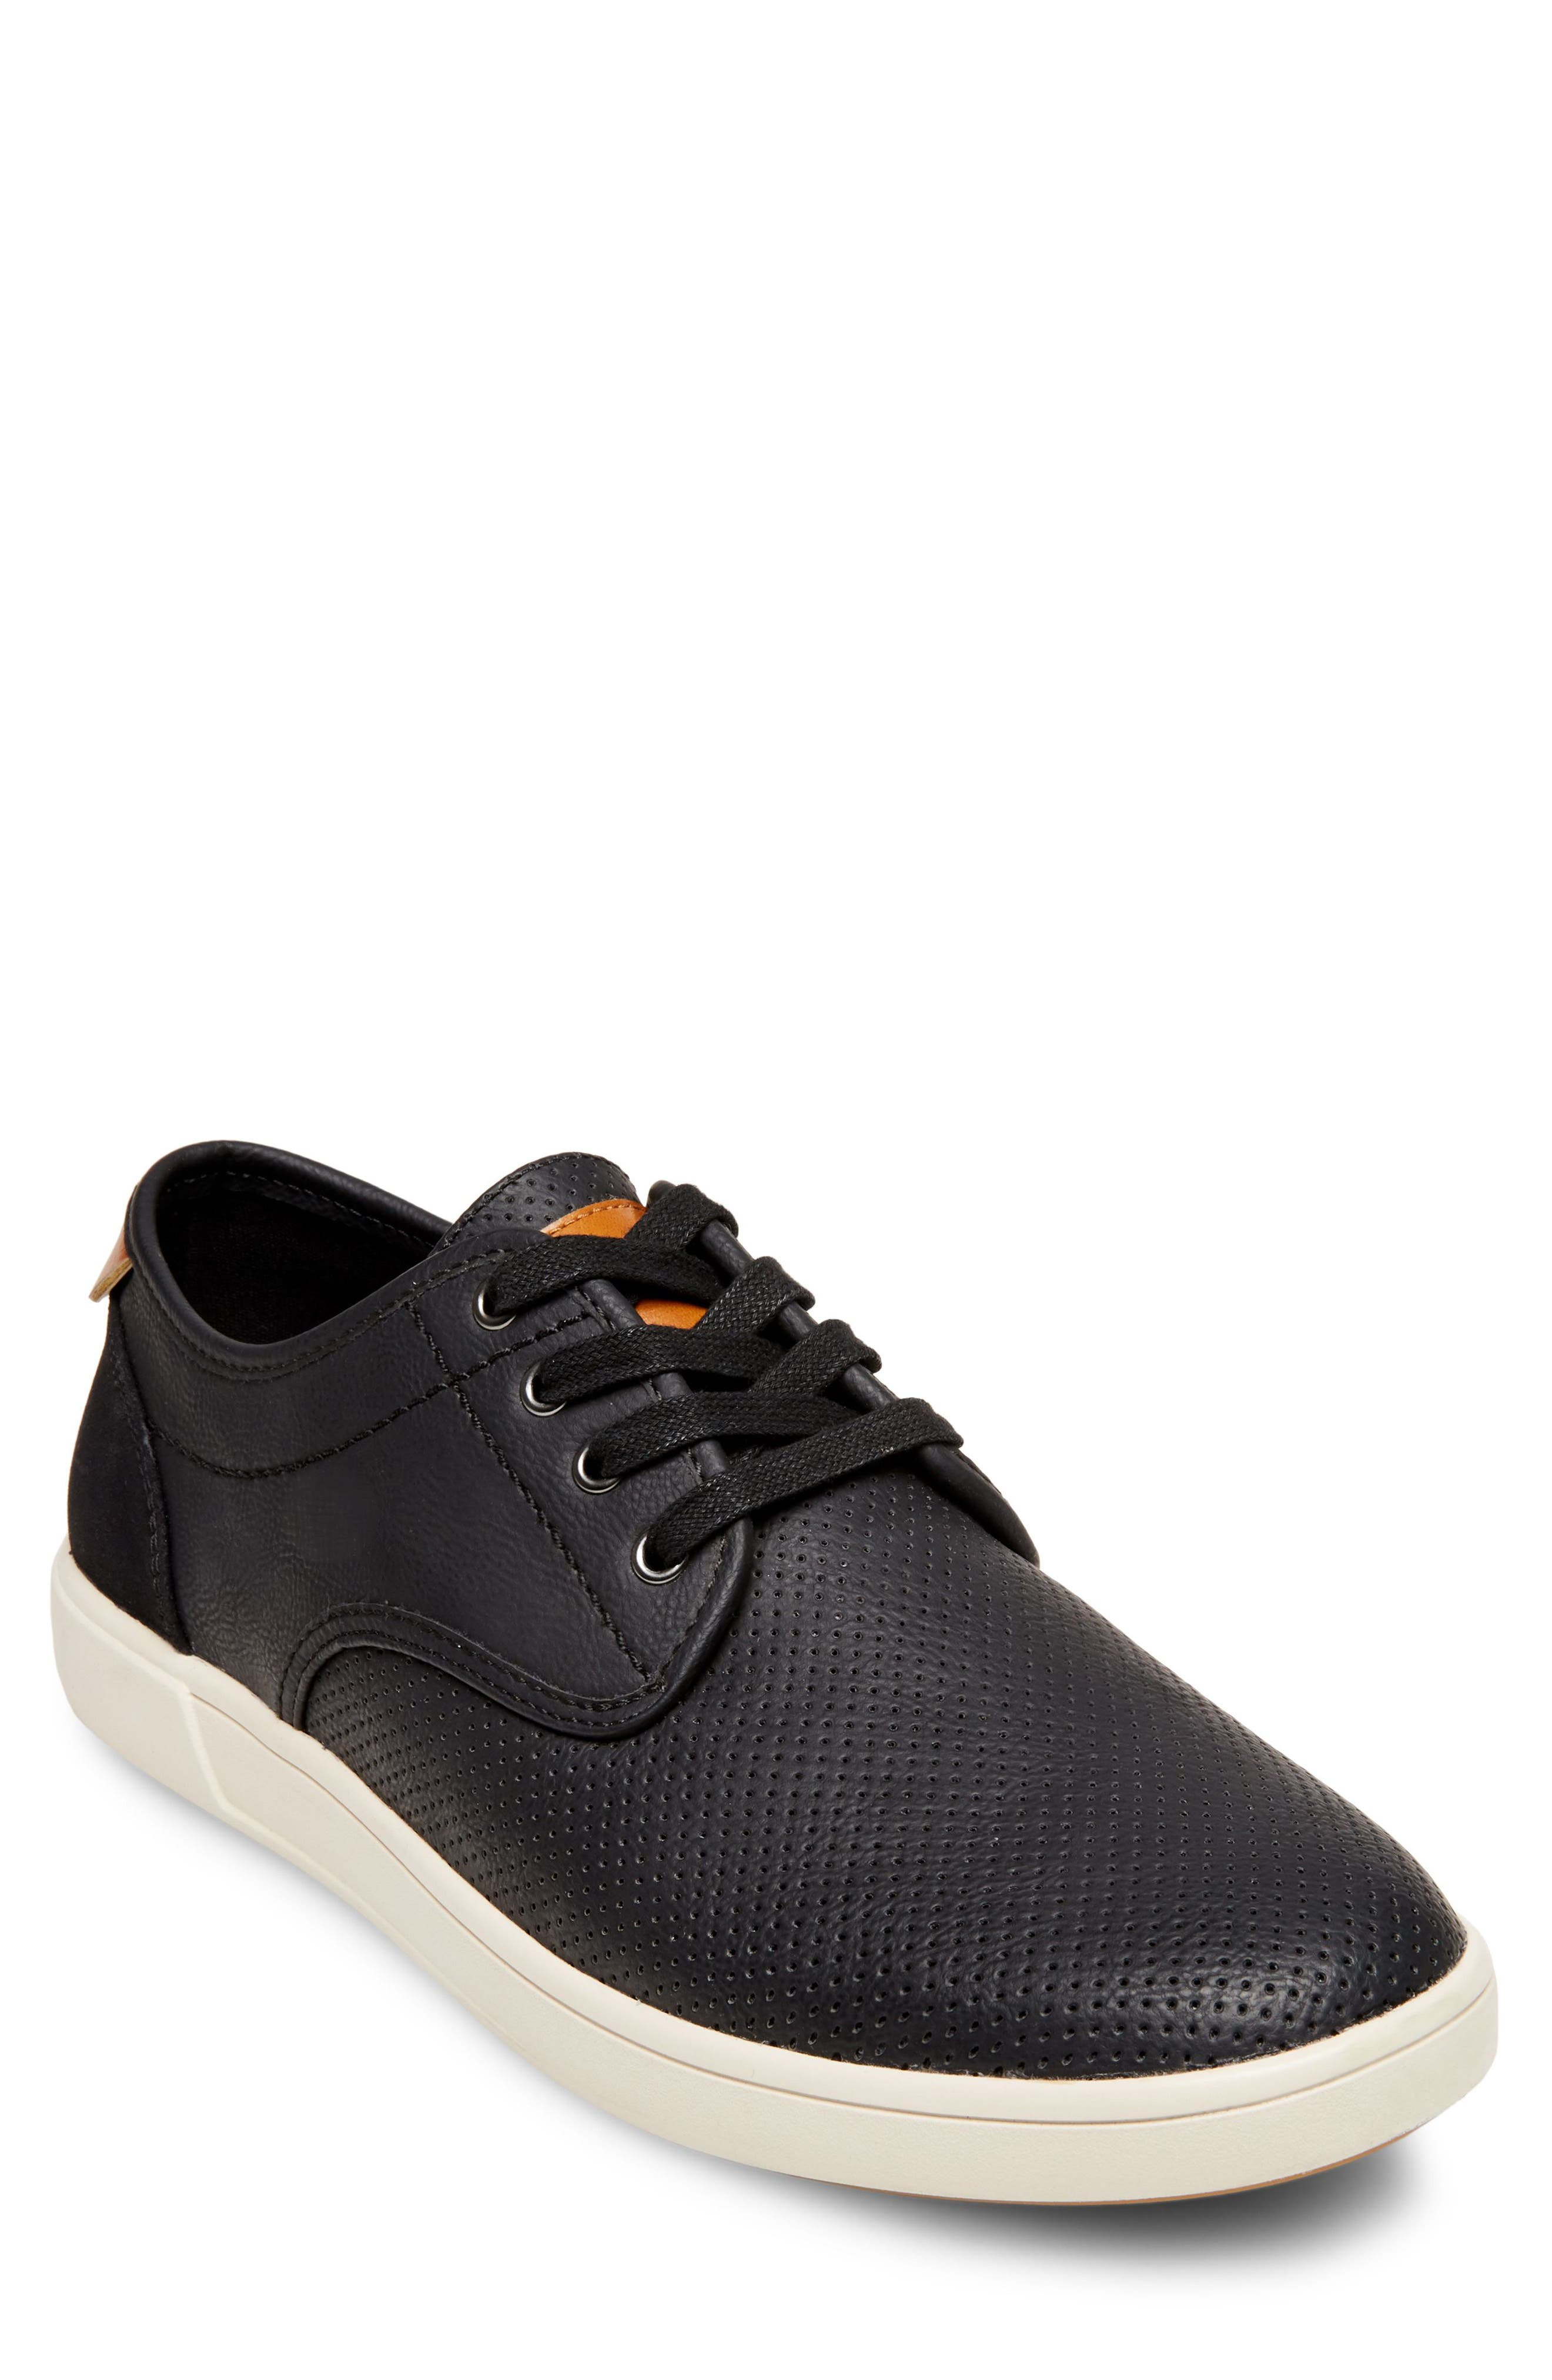 Flyerz Perforated Sneaker,                         Main,                         color, BLACK LEATHER